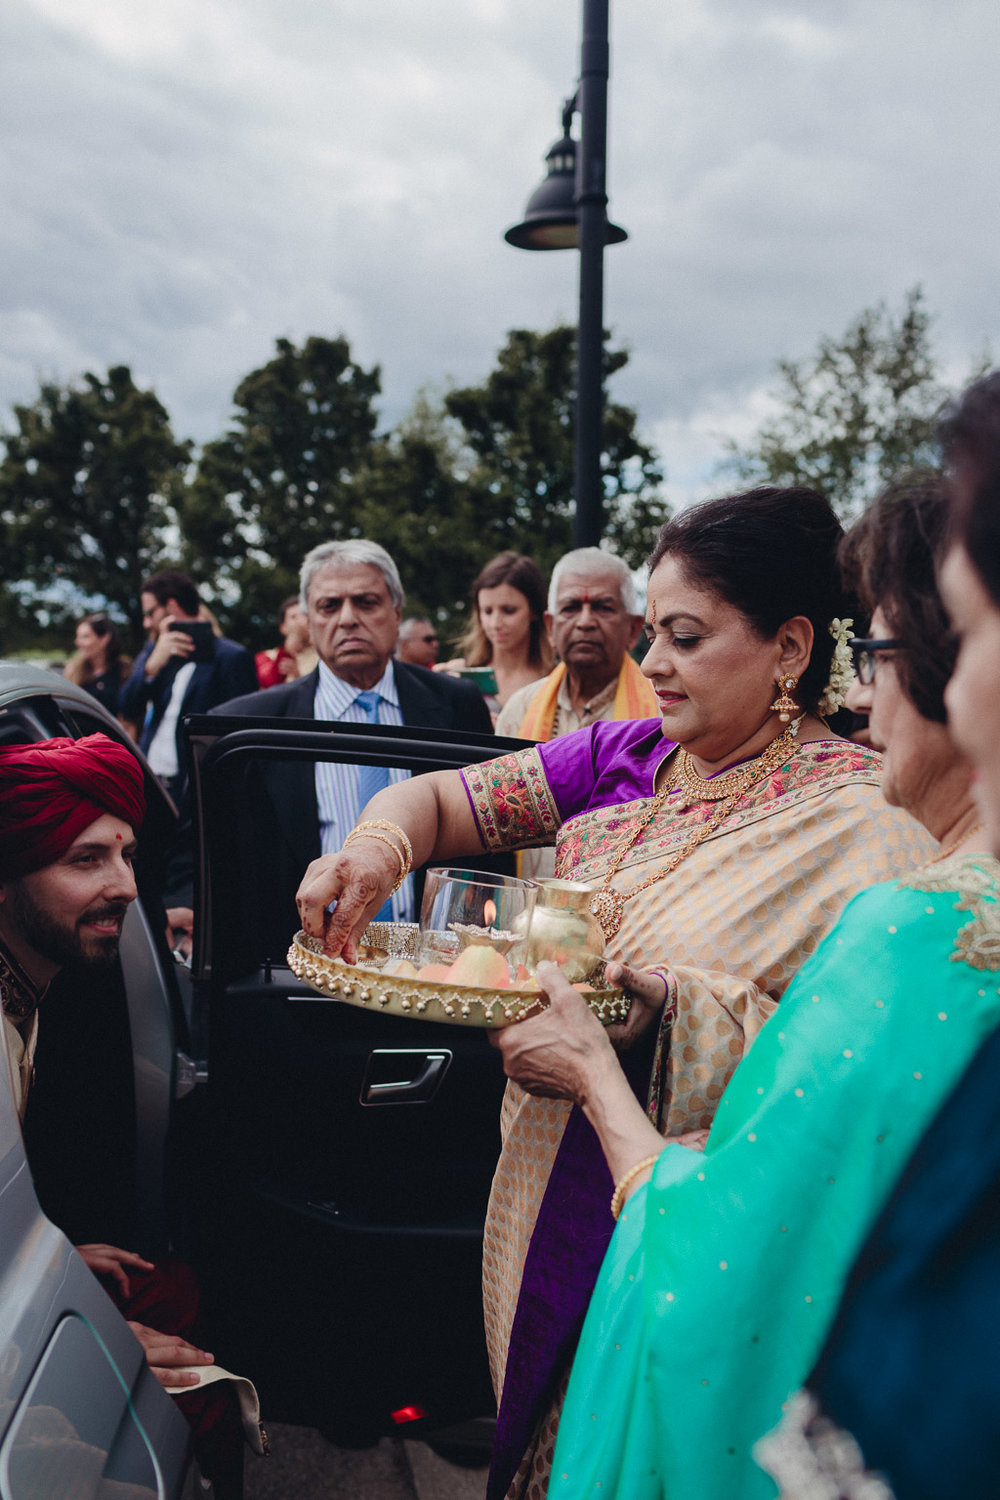 Toronto Indian Wedding by Toronto Wedding Photographer Evolylla Photography 0010.jpg